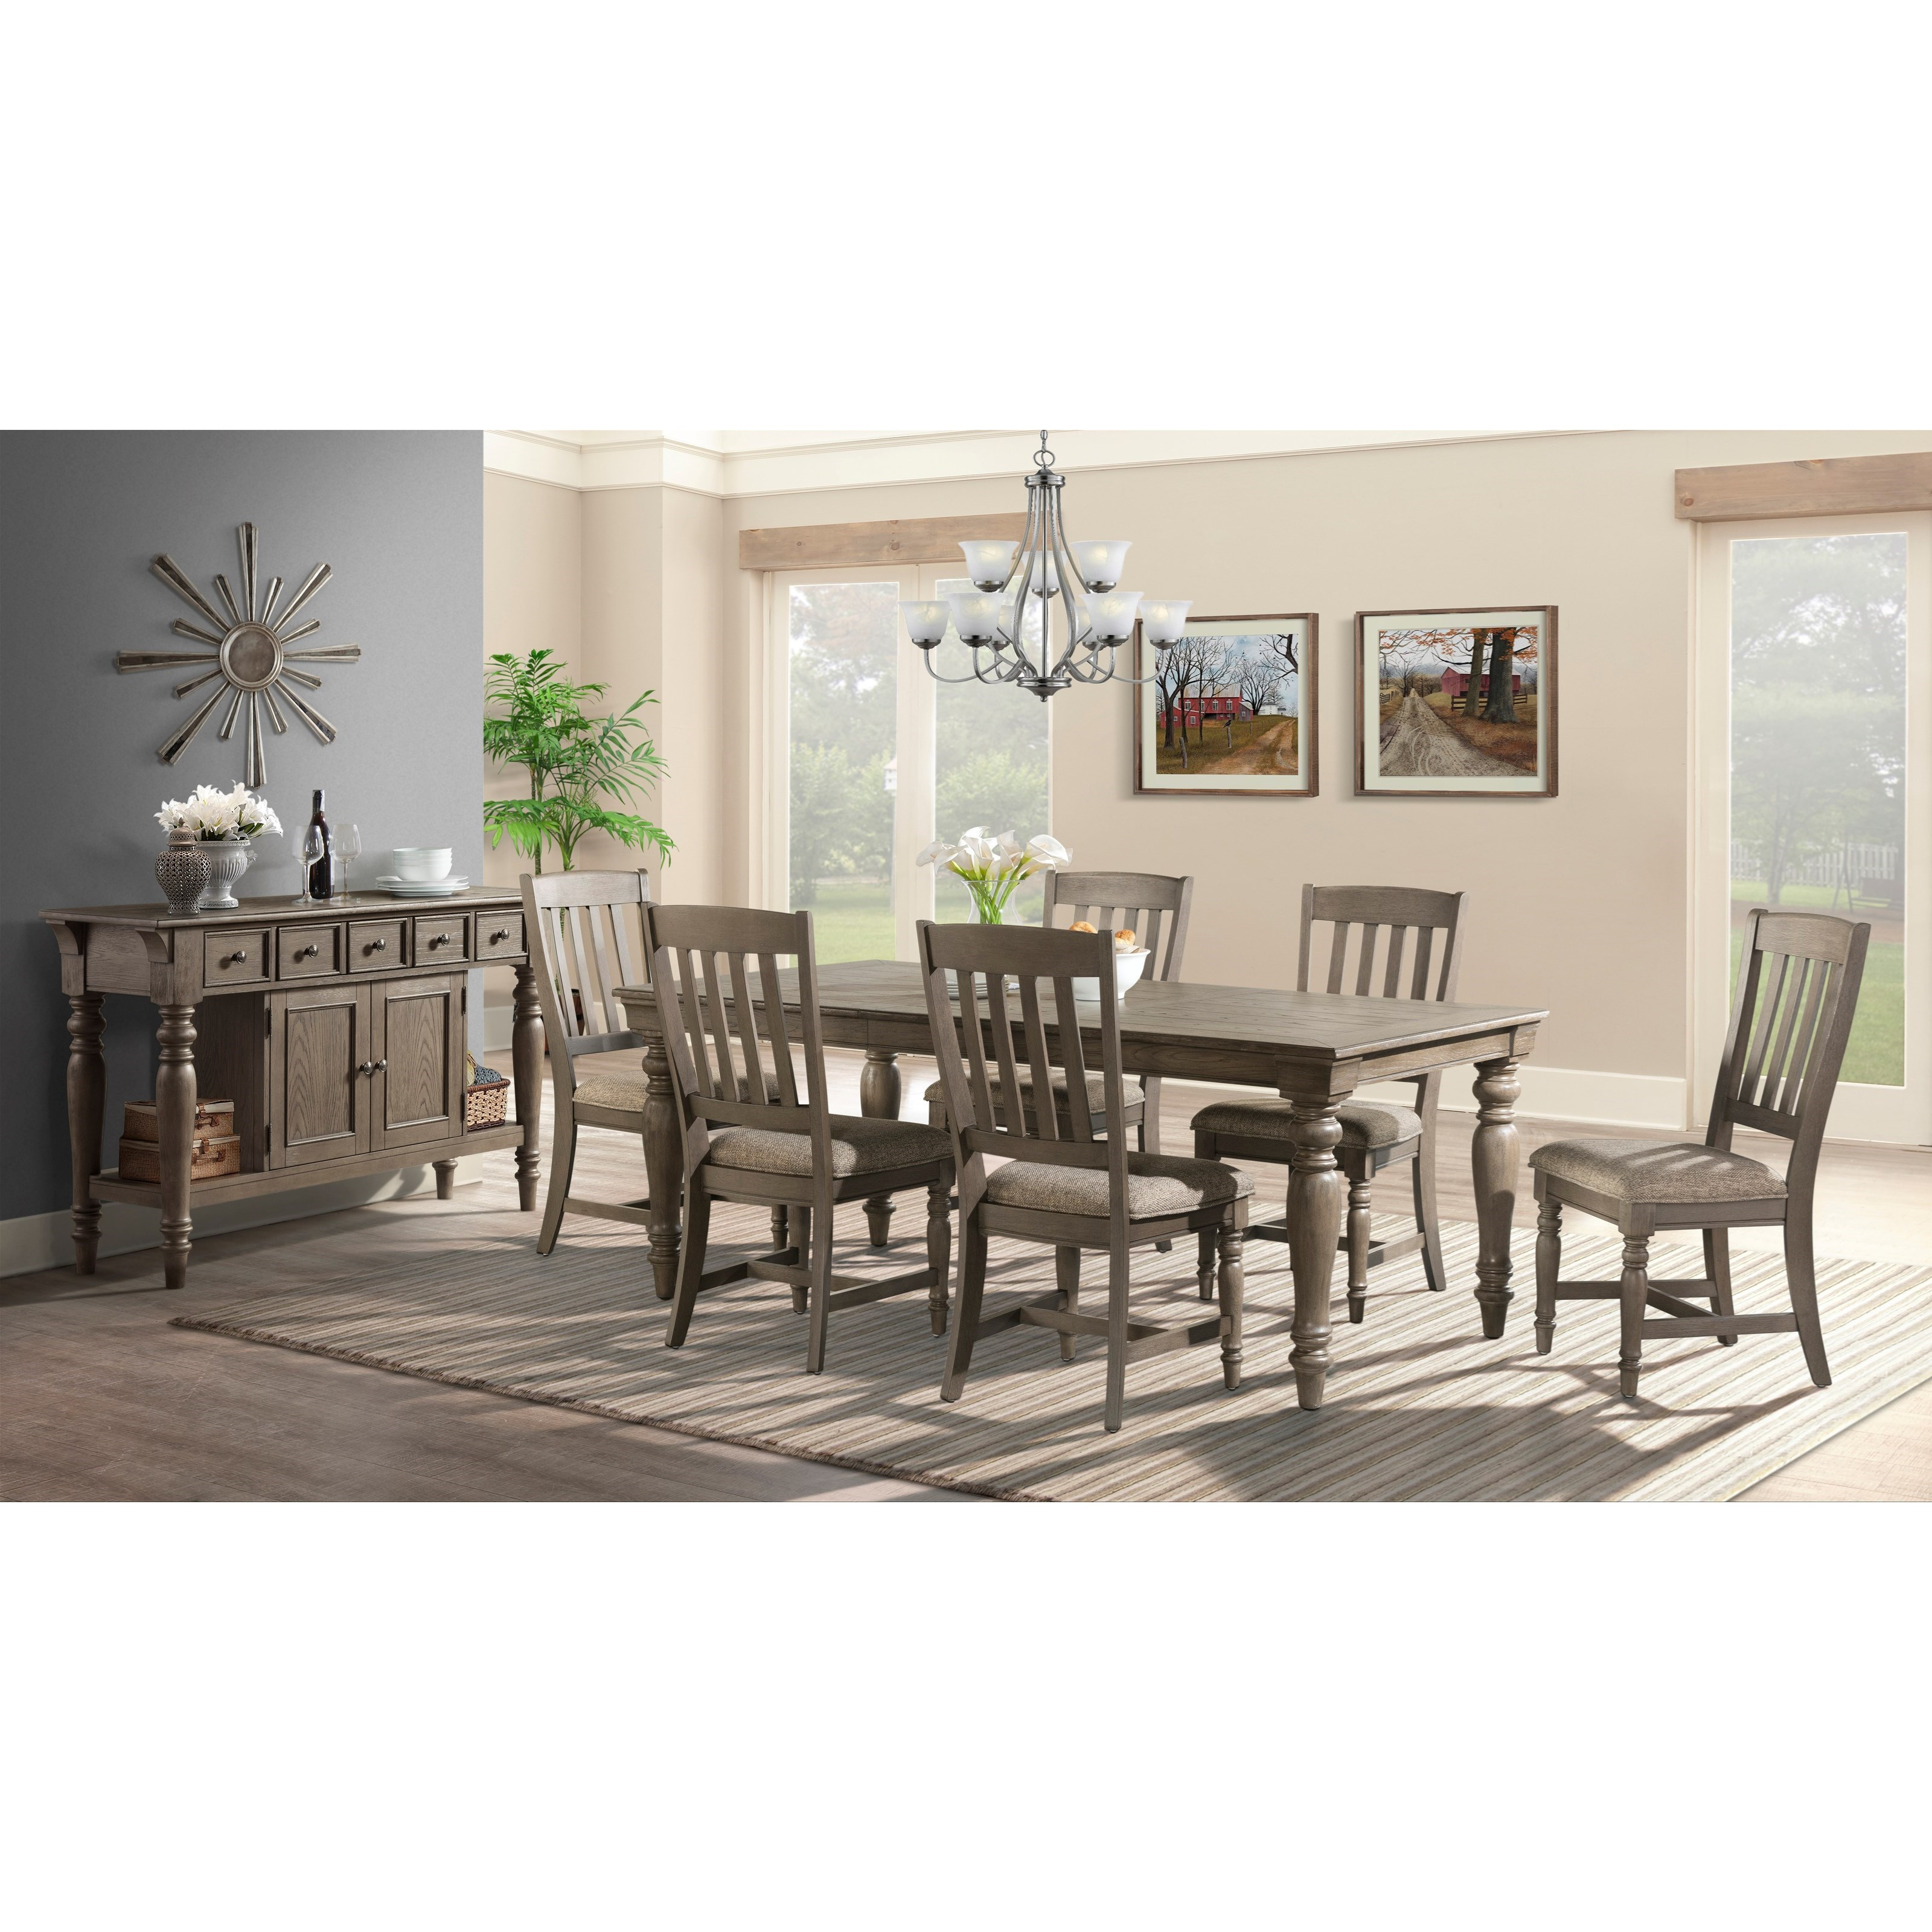 Dining Room Tables San Diego: Intercon Balboa Park Transitional 7 Piece Dining Set